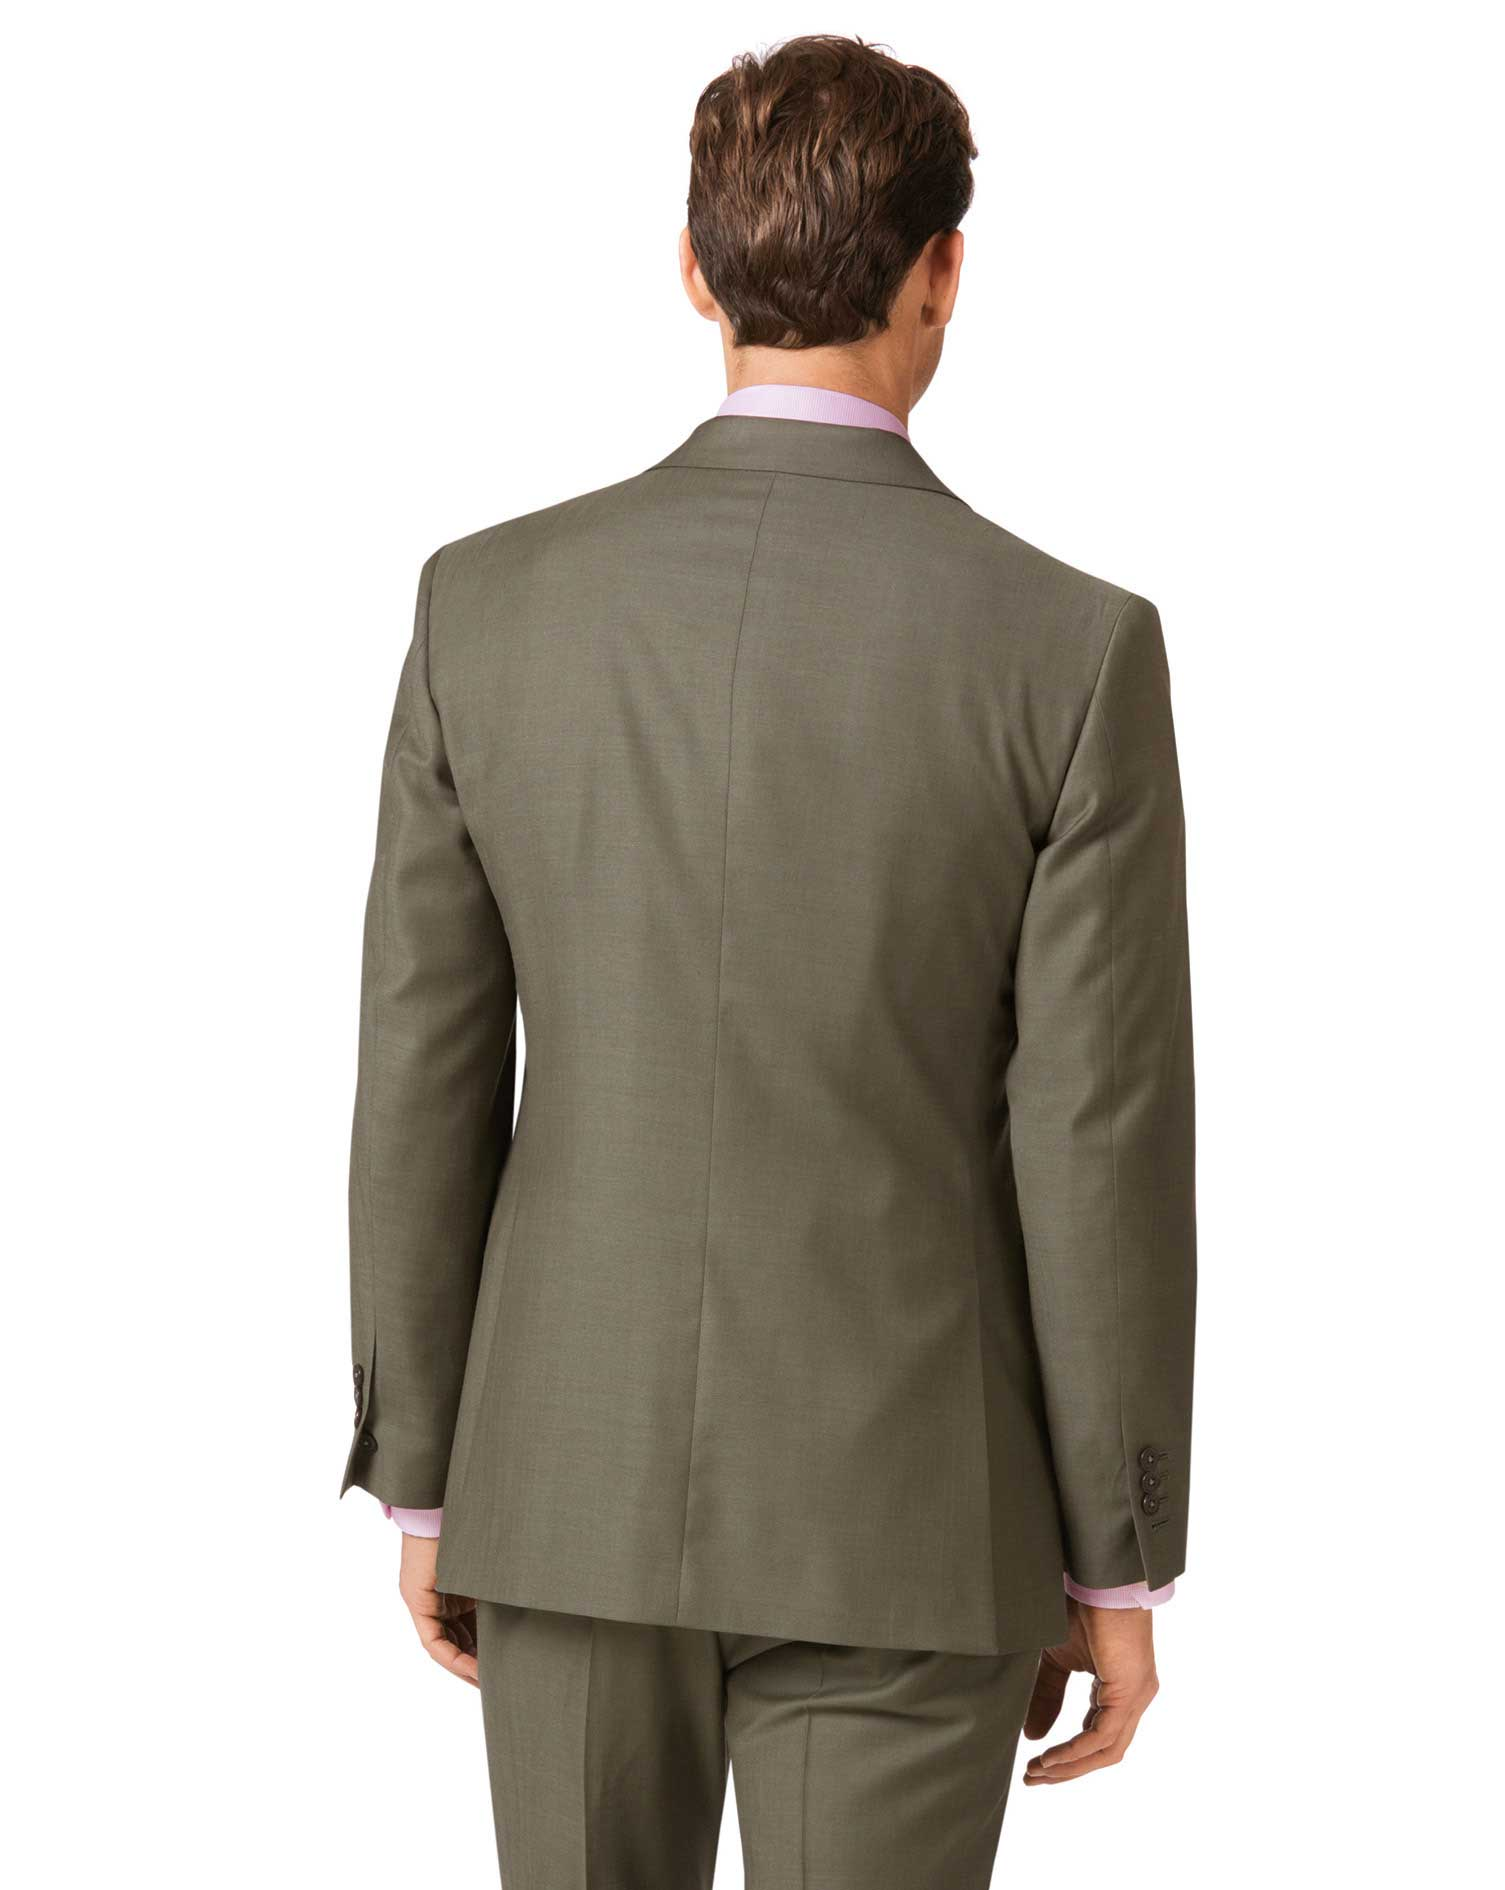 Olive slim fit twill business suit jacket